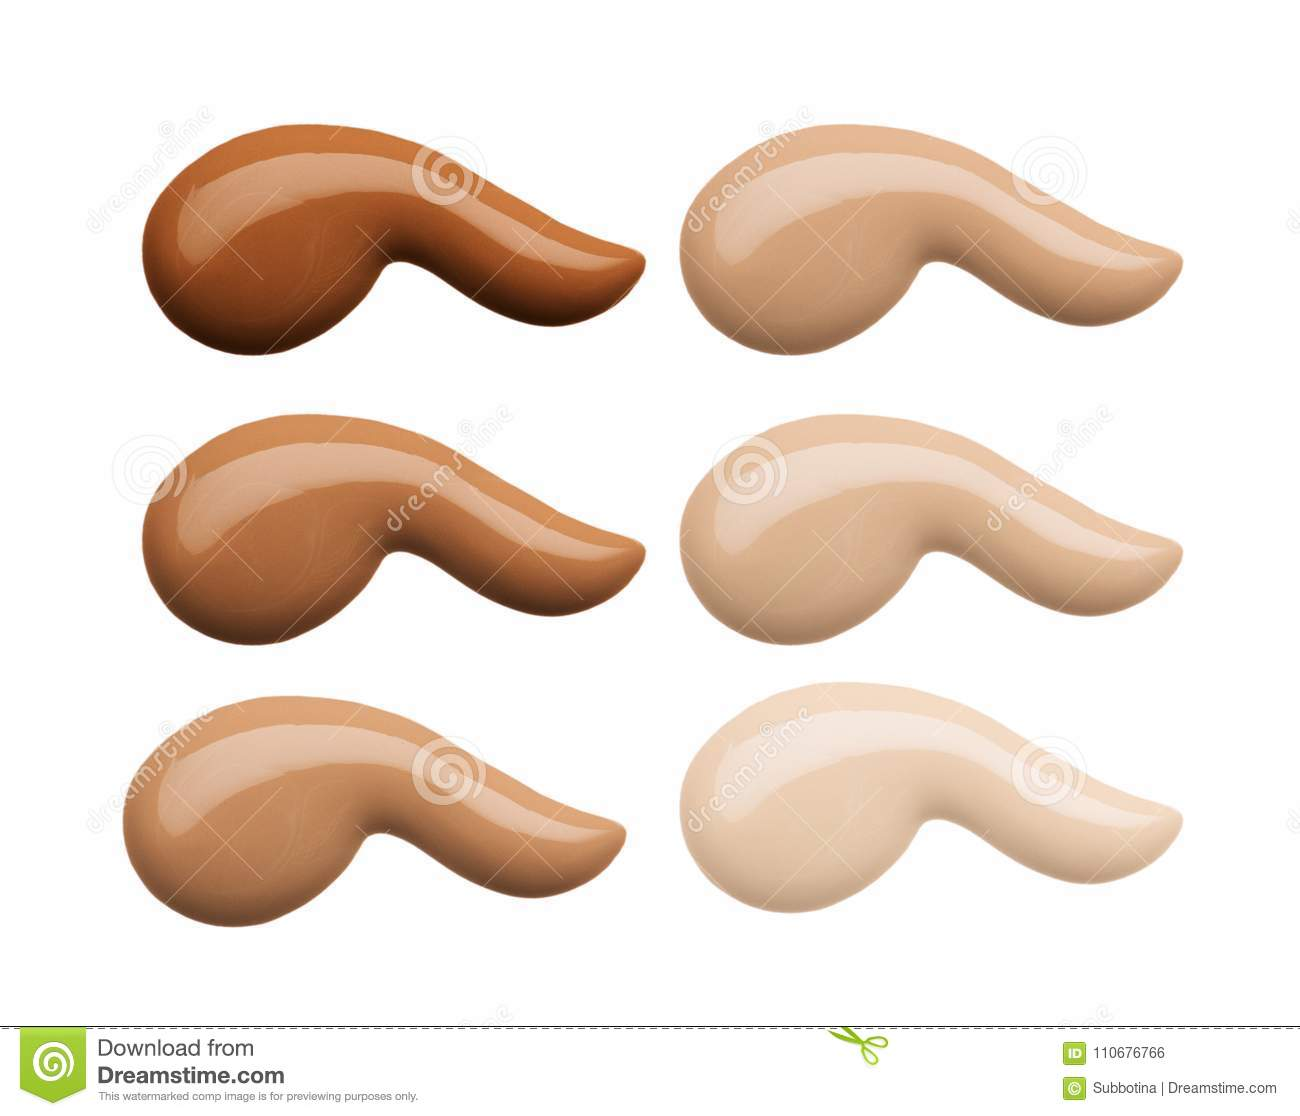 Foundation face makeup samples. Set of cosmetic liquid foundation or cream in different colour smudge smear strokes. Make up smear